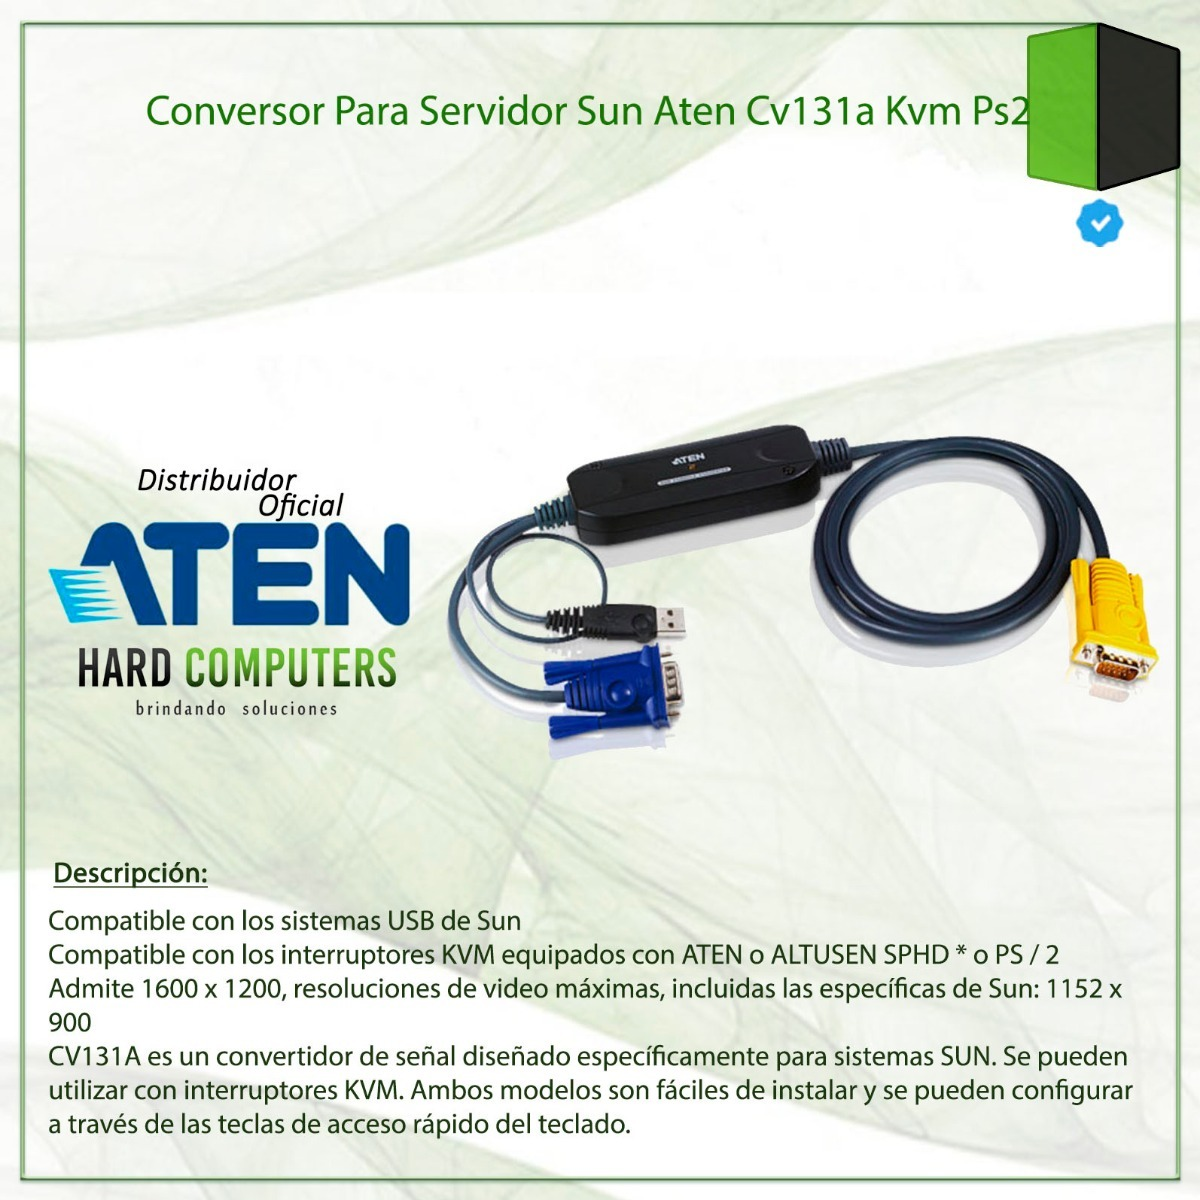 ATEN CV131A WINDOWS 7 X64 DRIVER